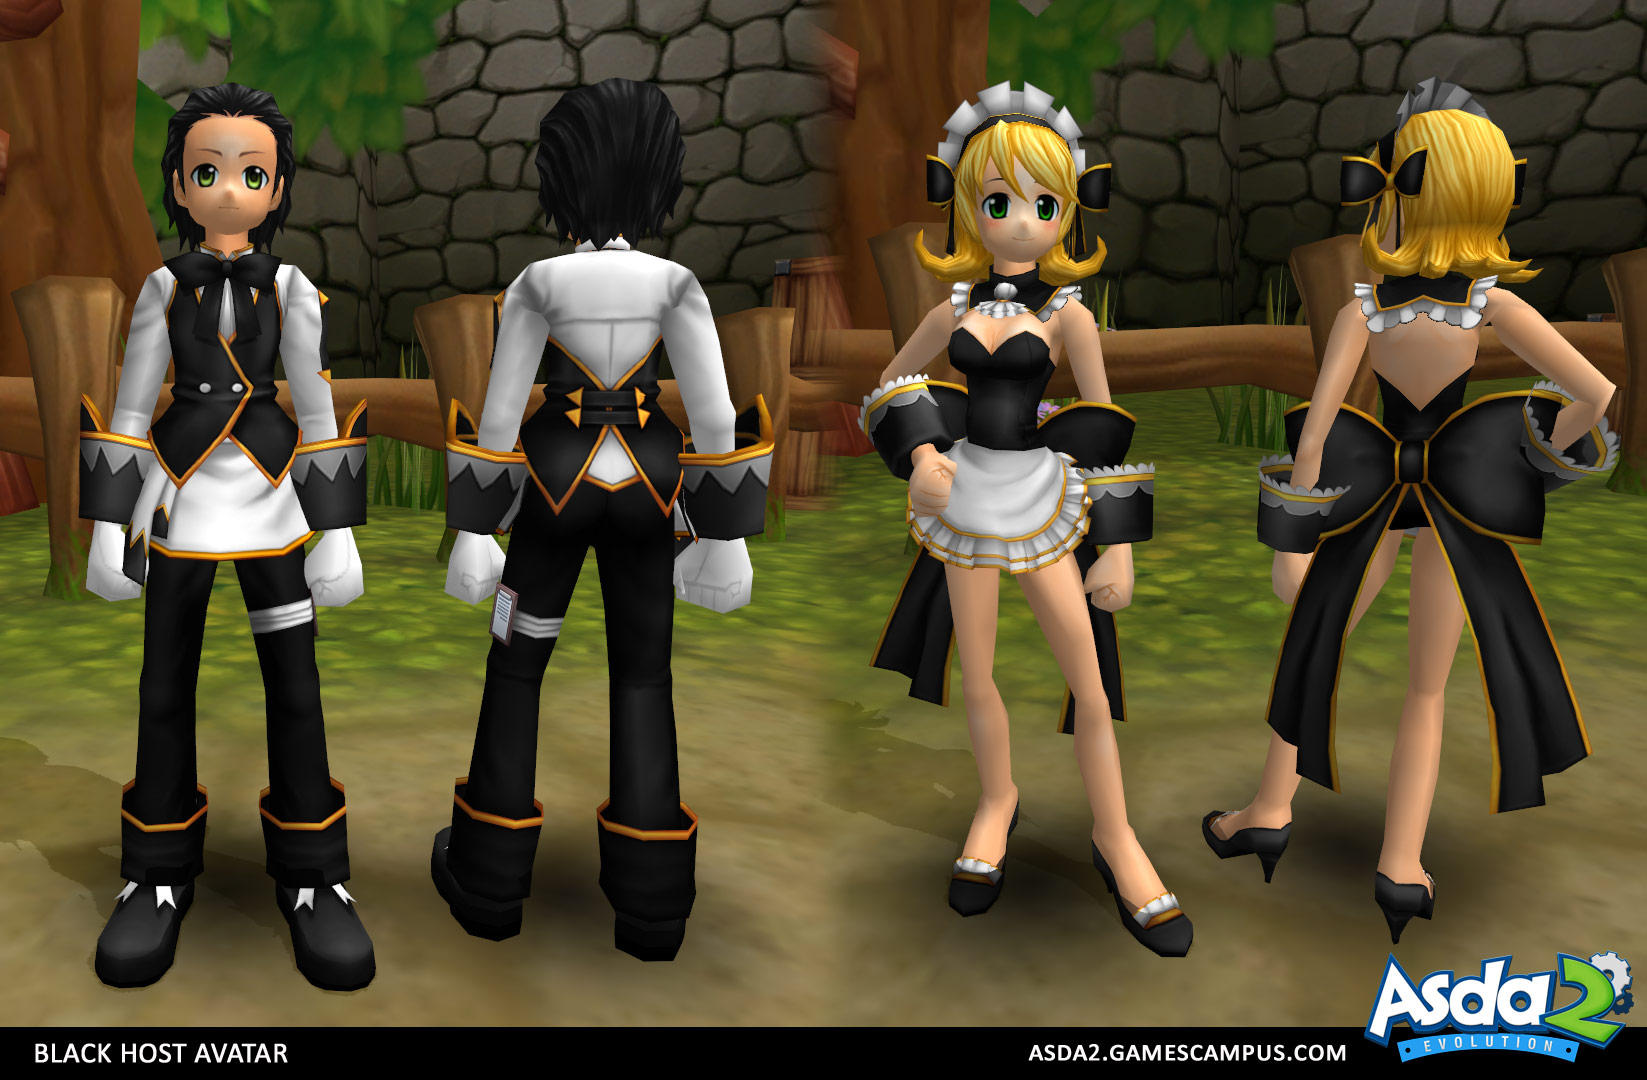 Best Anime MMORPG - Asda 2 - Black Host Set